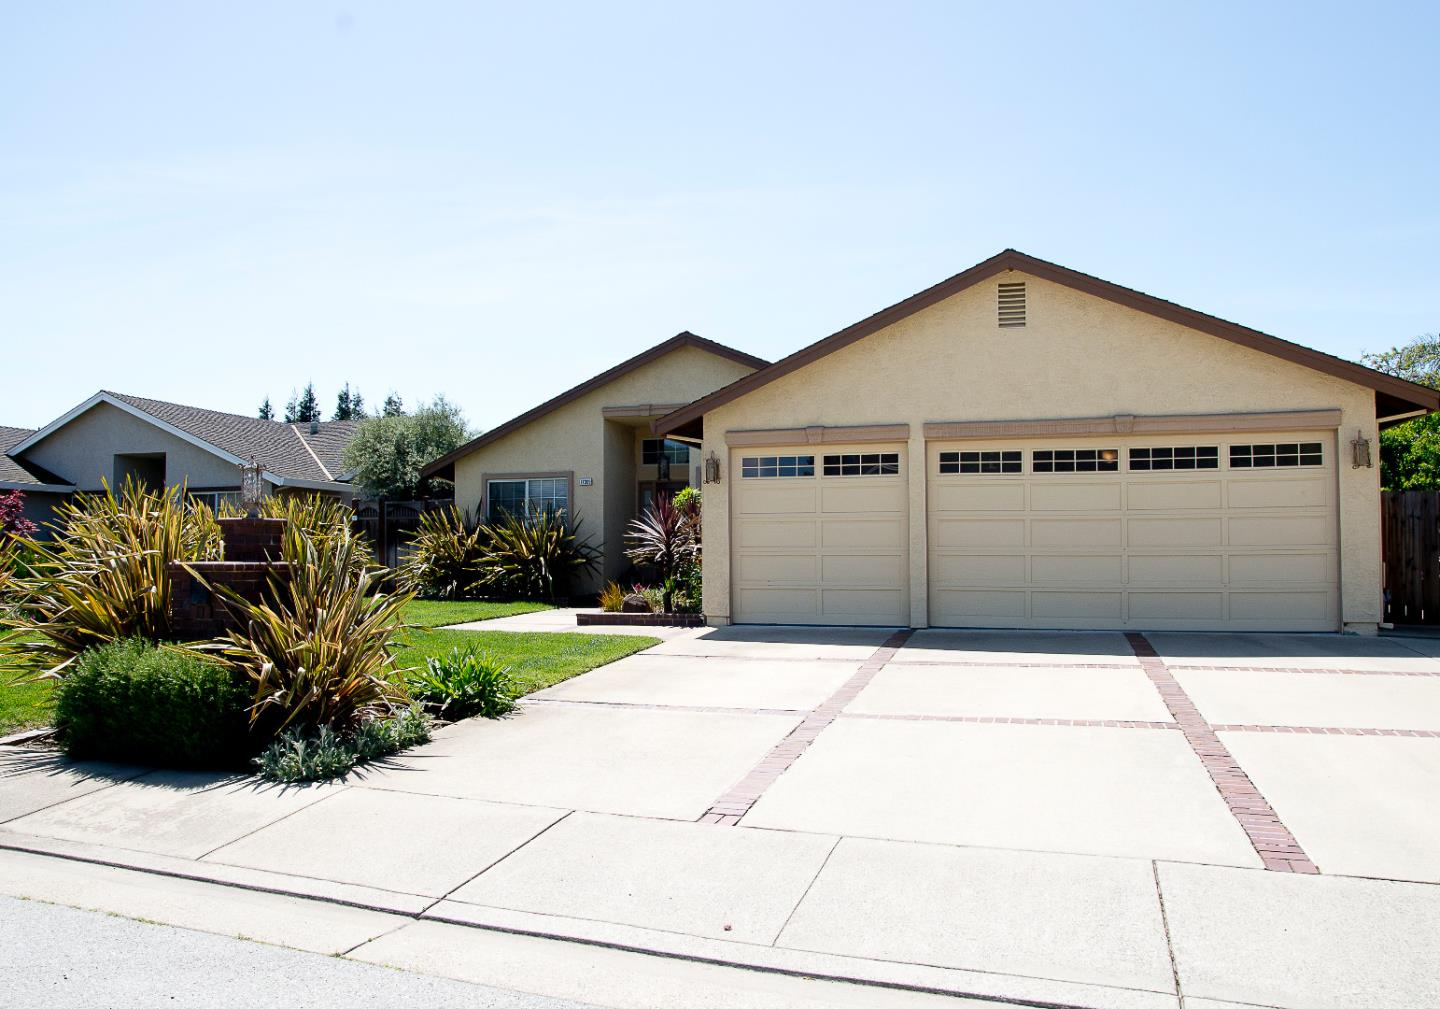 Single Family Home for Sale at 17399 Walnut Grove Drive Morgan Hill, California 95037 United States